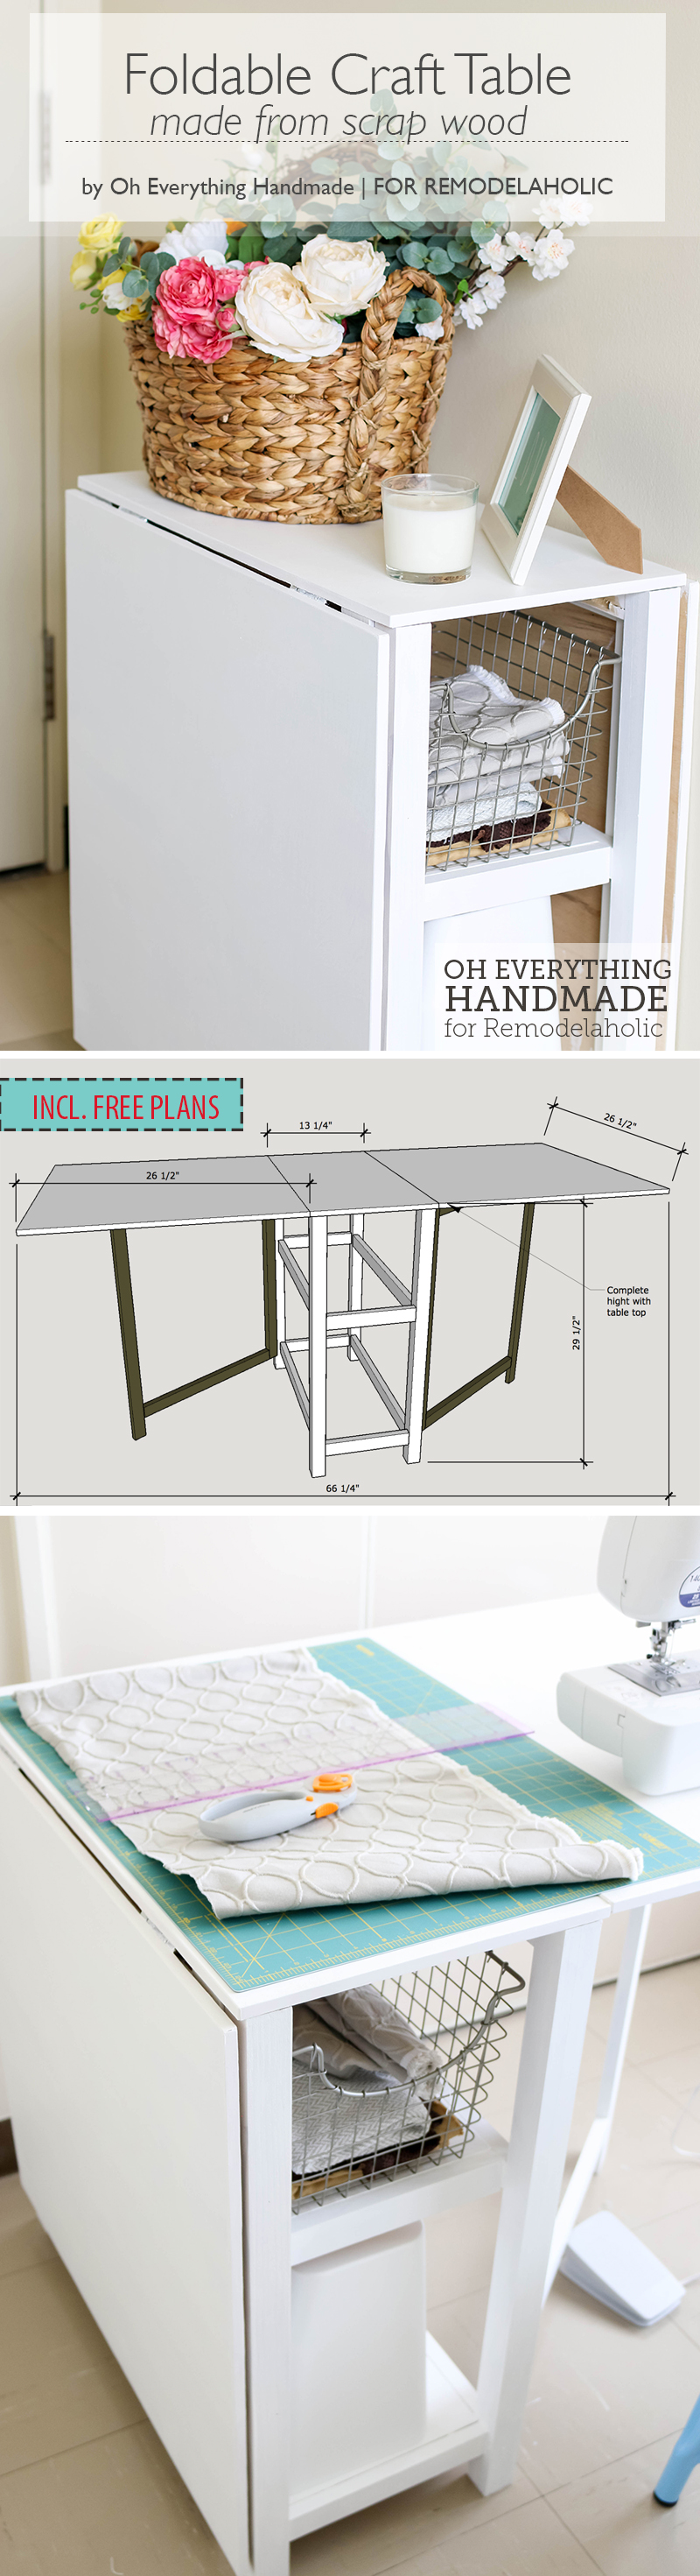 Diy foldable craft table - Small space sewing area style ...